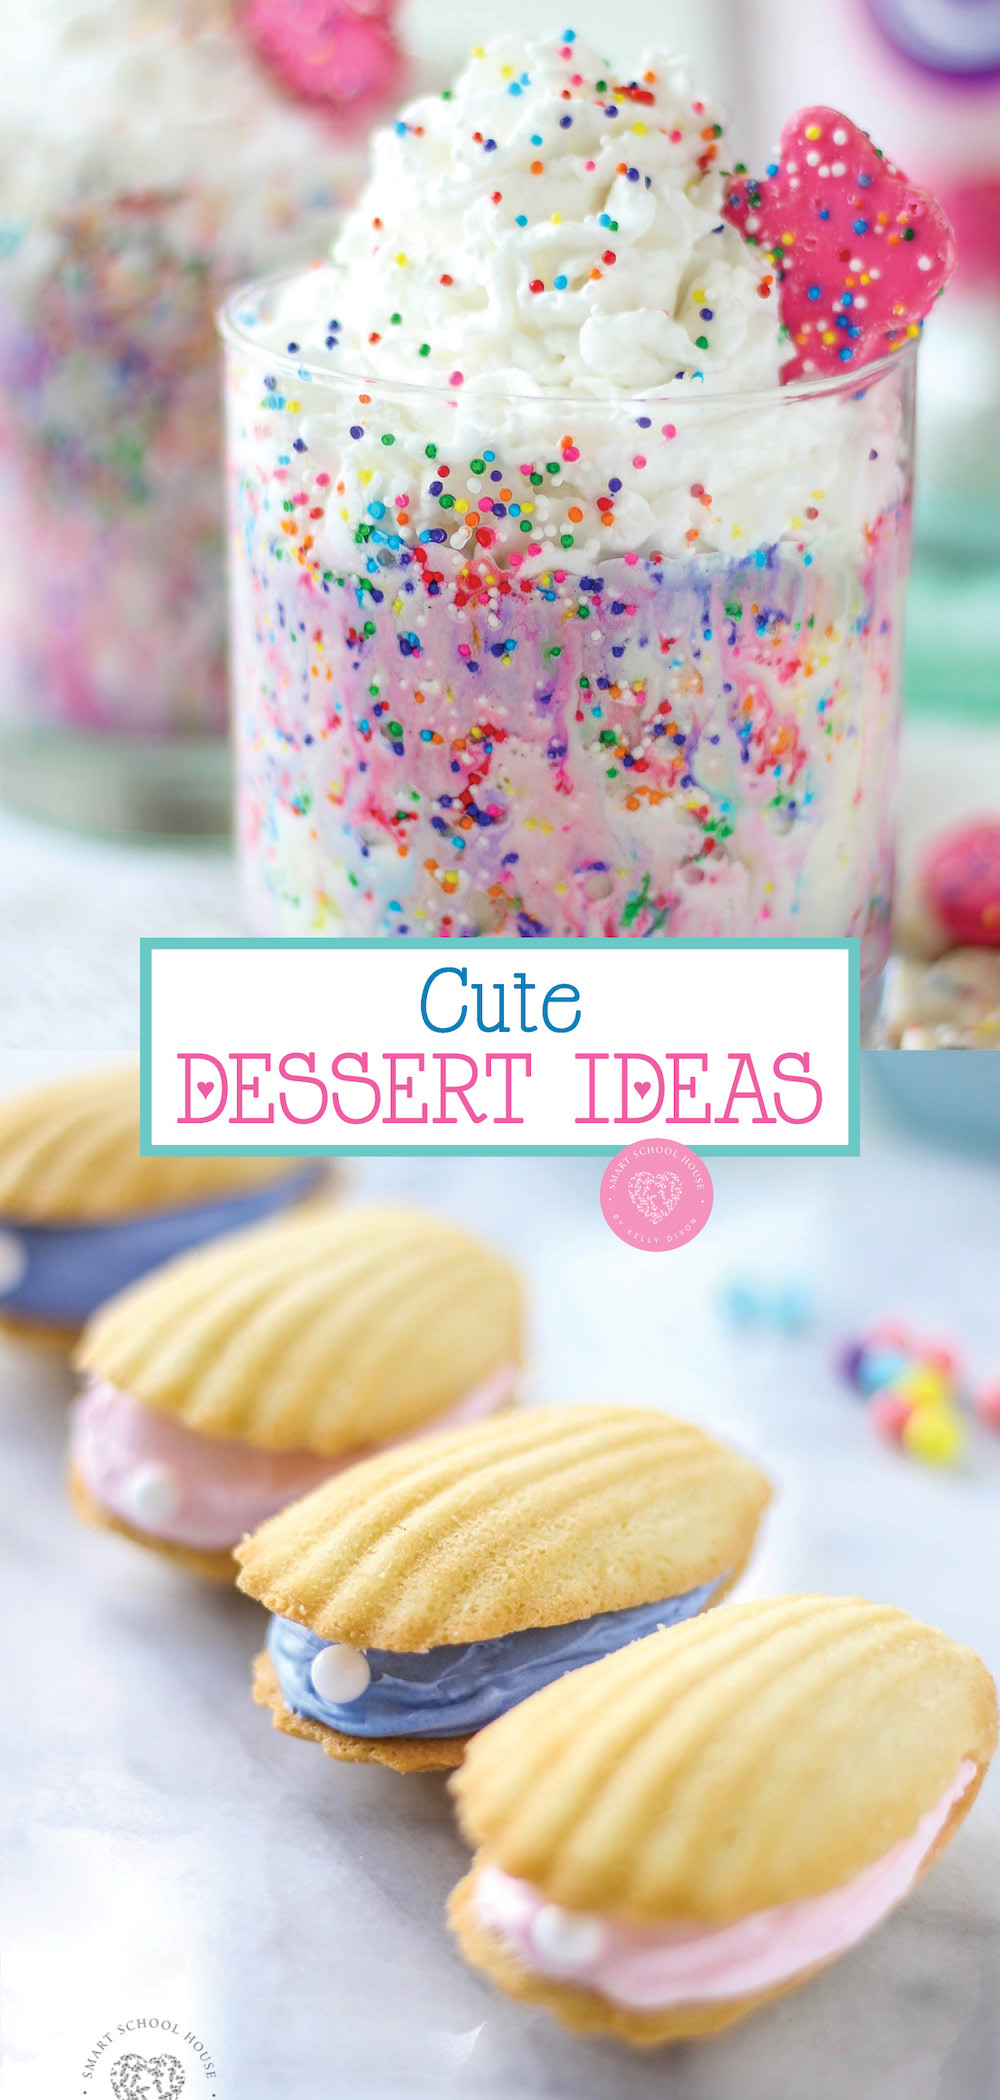 Cute Dessert ideas for any occasion or just for fun!